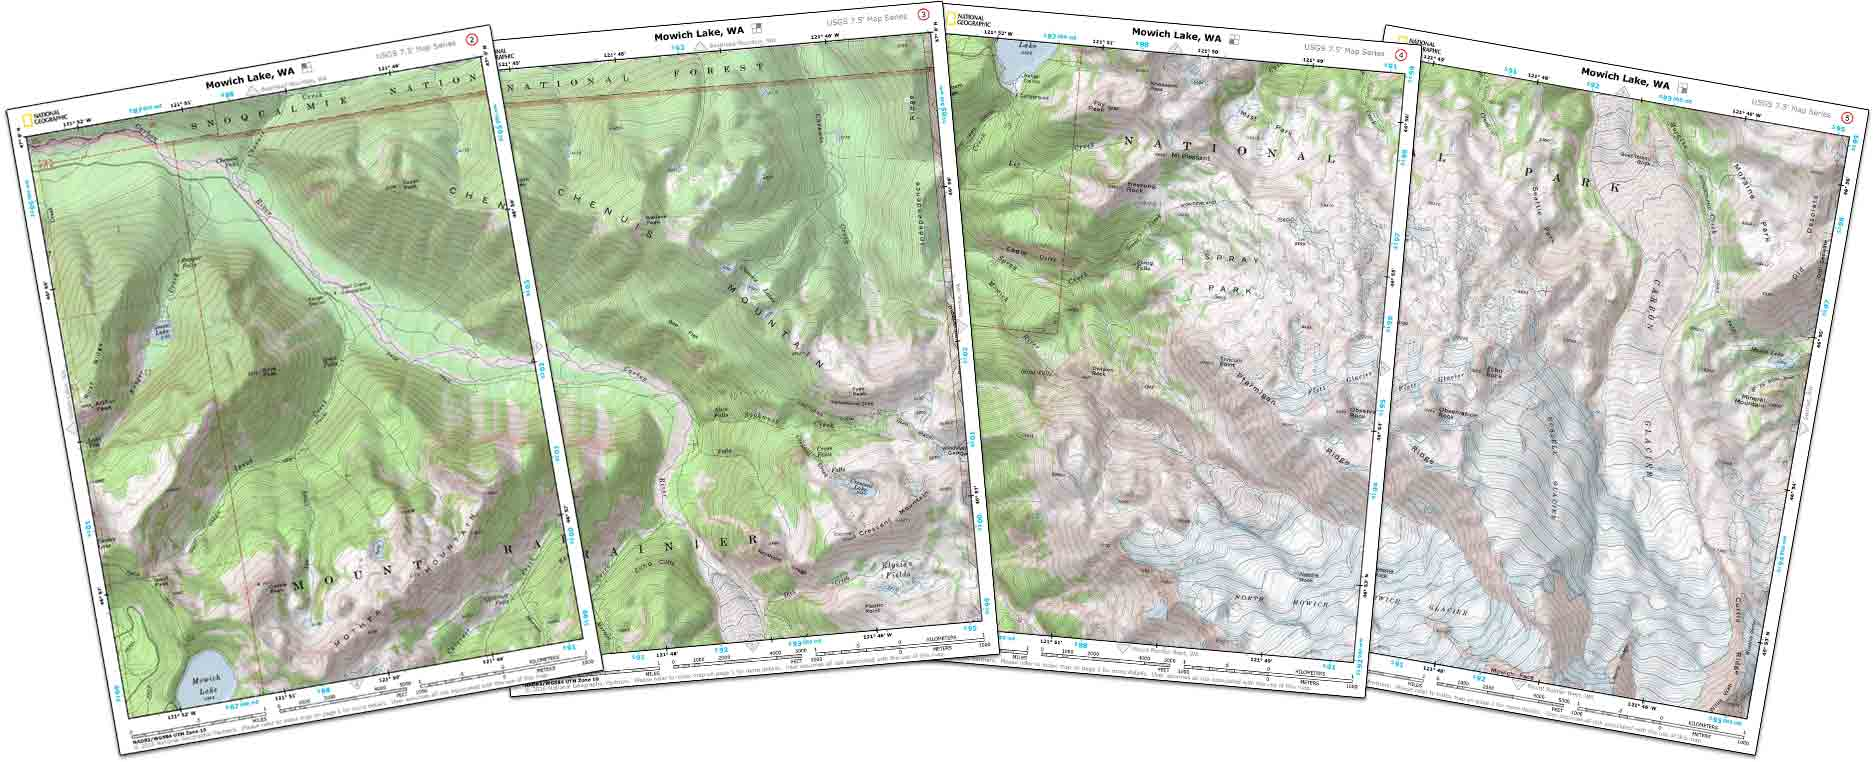 National Geographic Just Made it Easy to Find Free Topo Maps ... on orienteering map, hiking tours, hiking trail, following a map, trail map, hunting map, space exploration map, hiking tracks, nature map, places to go map, hiking tips,